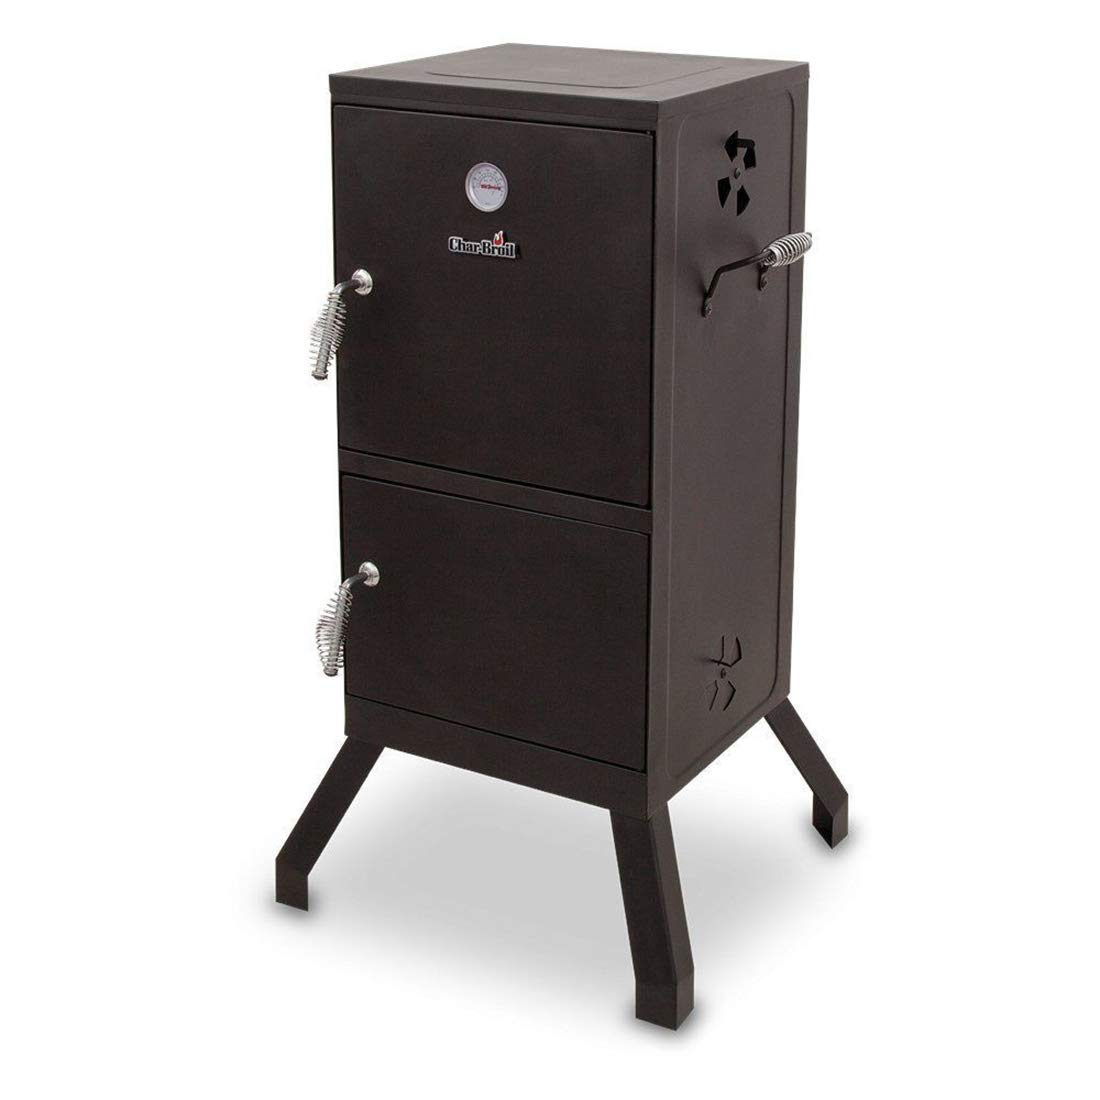 FossExpress New Grill Cooker [Vertical Steel Chamber 21.5 x 20.8 x 39 inches] - Charcoal Smoker - Work Great for BBQ Cooking - Outdoor, Patio Backyard - Black by FossExpress (Image #1)